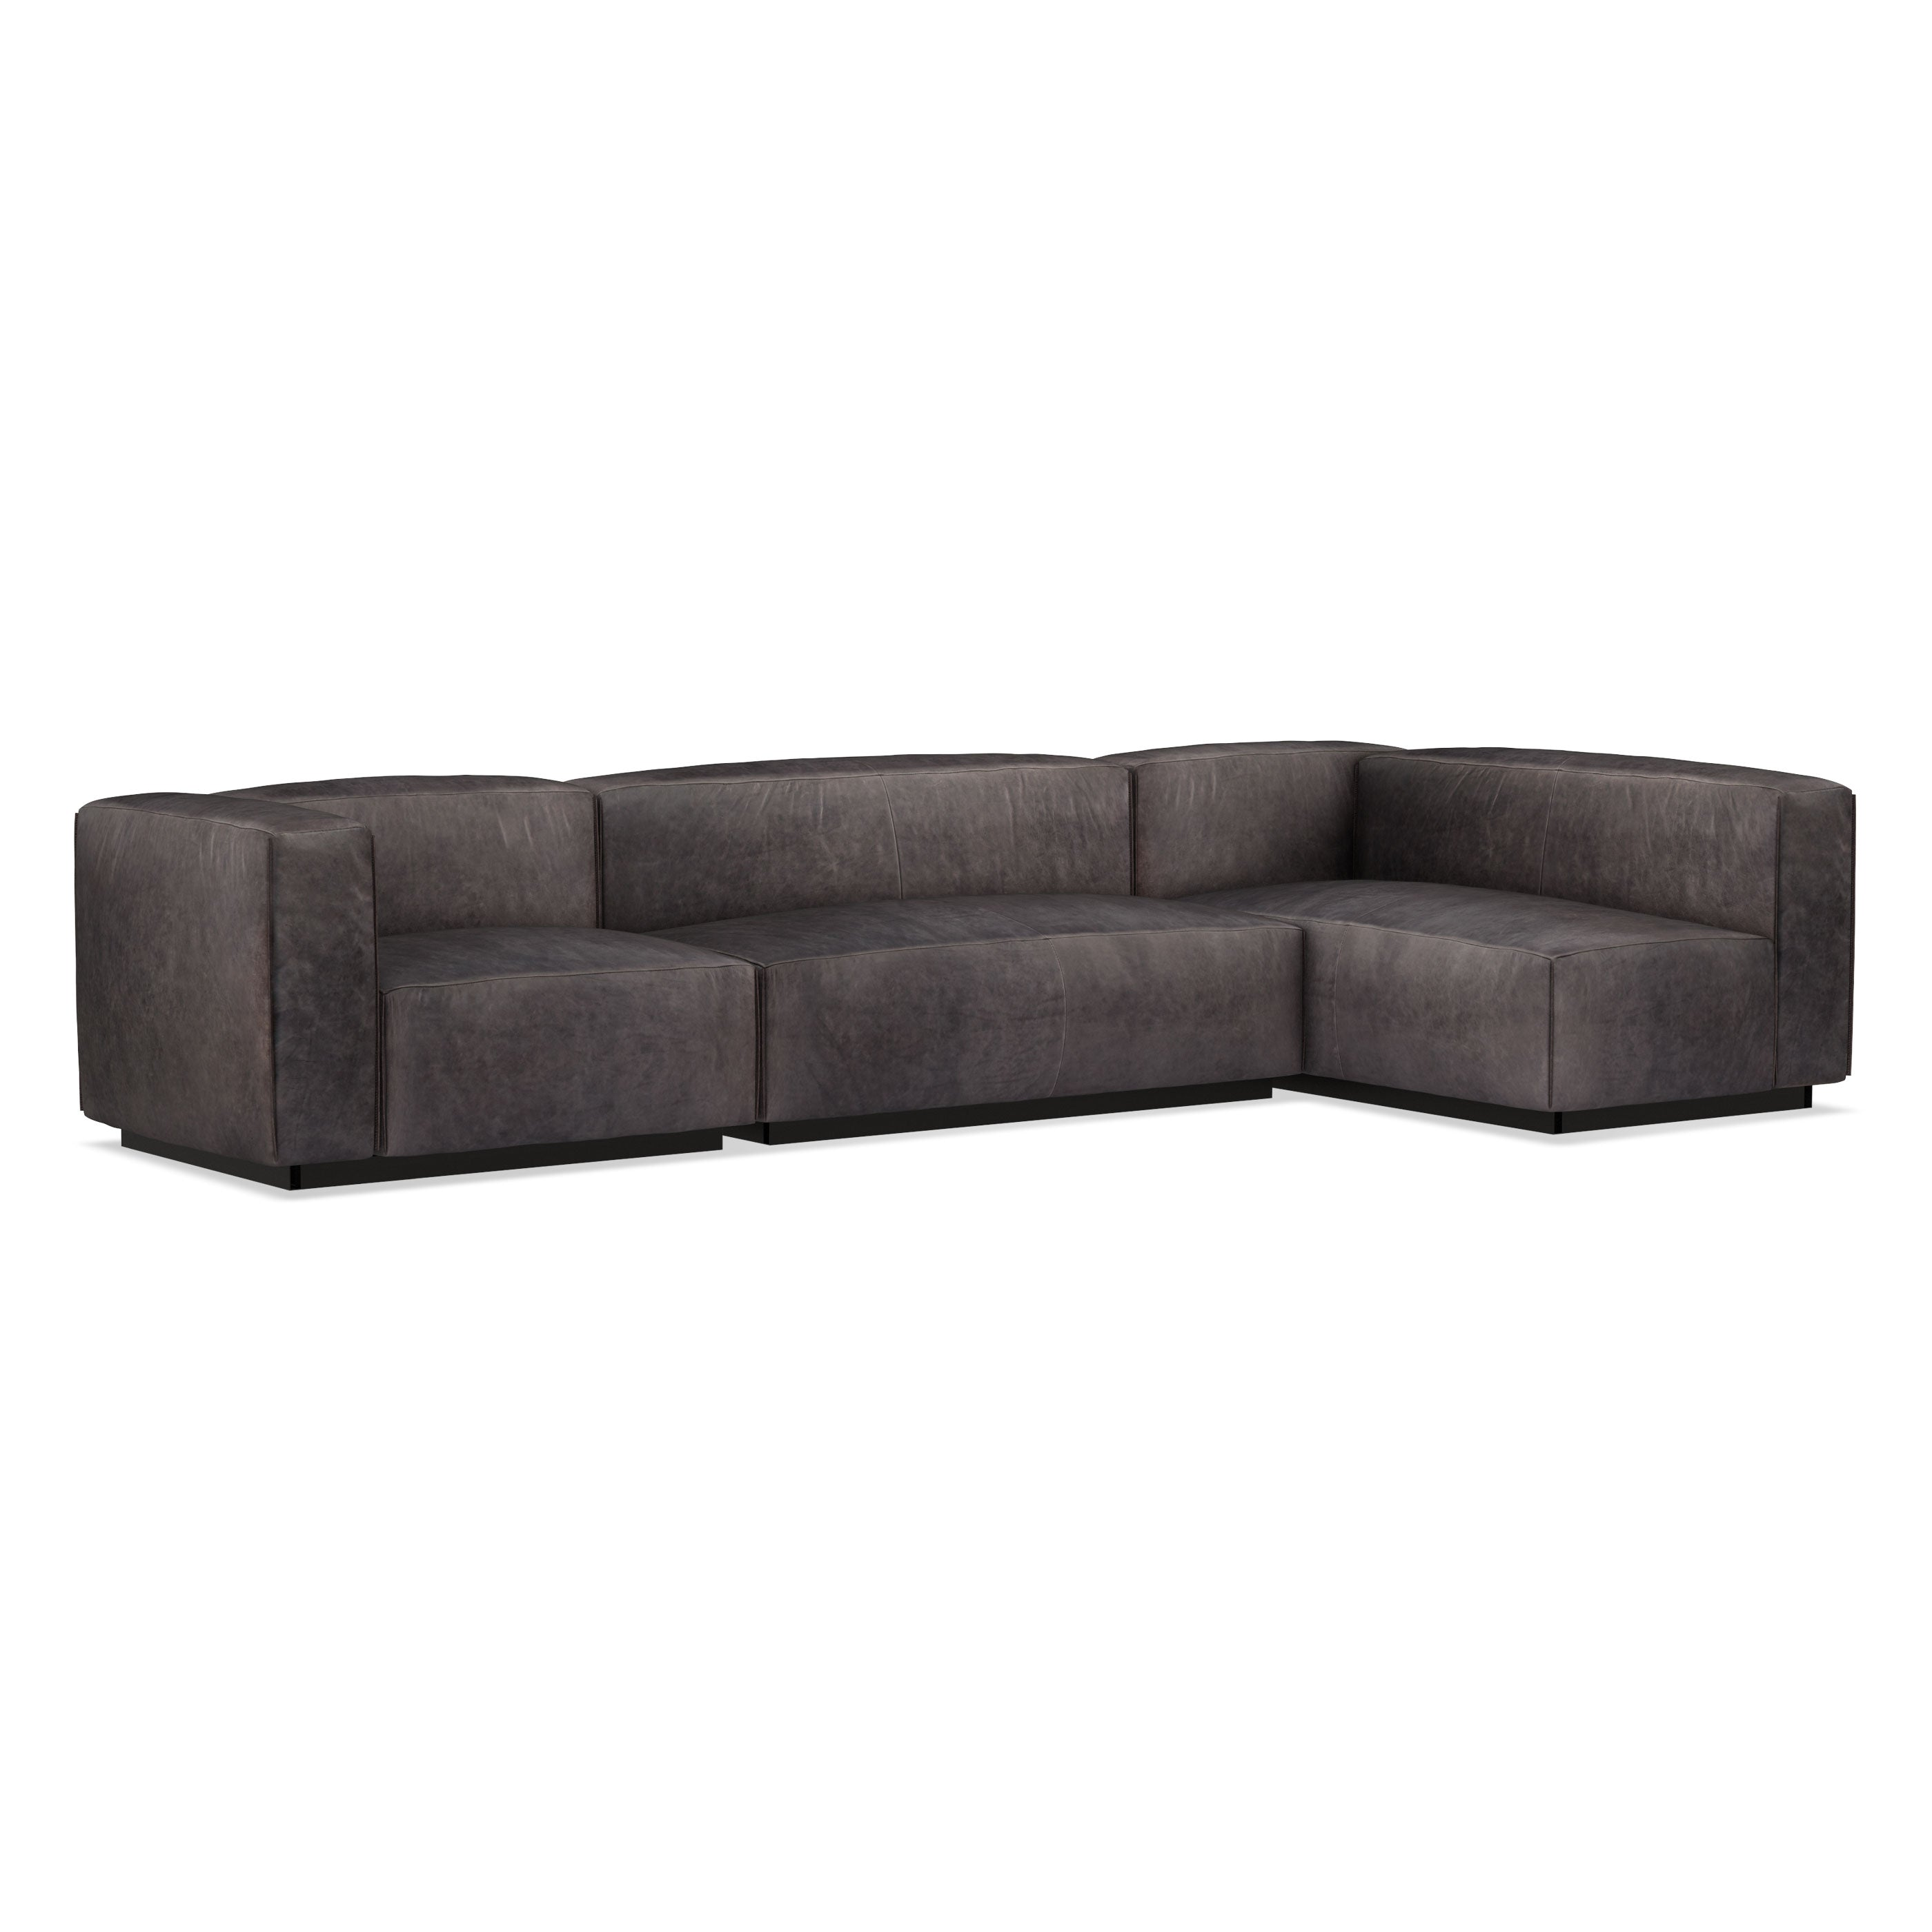 Cleon Medium+ Leather Modular Sectional Sofa